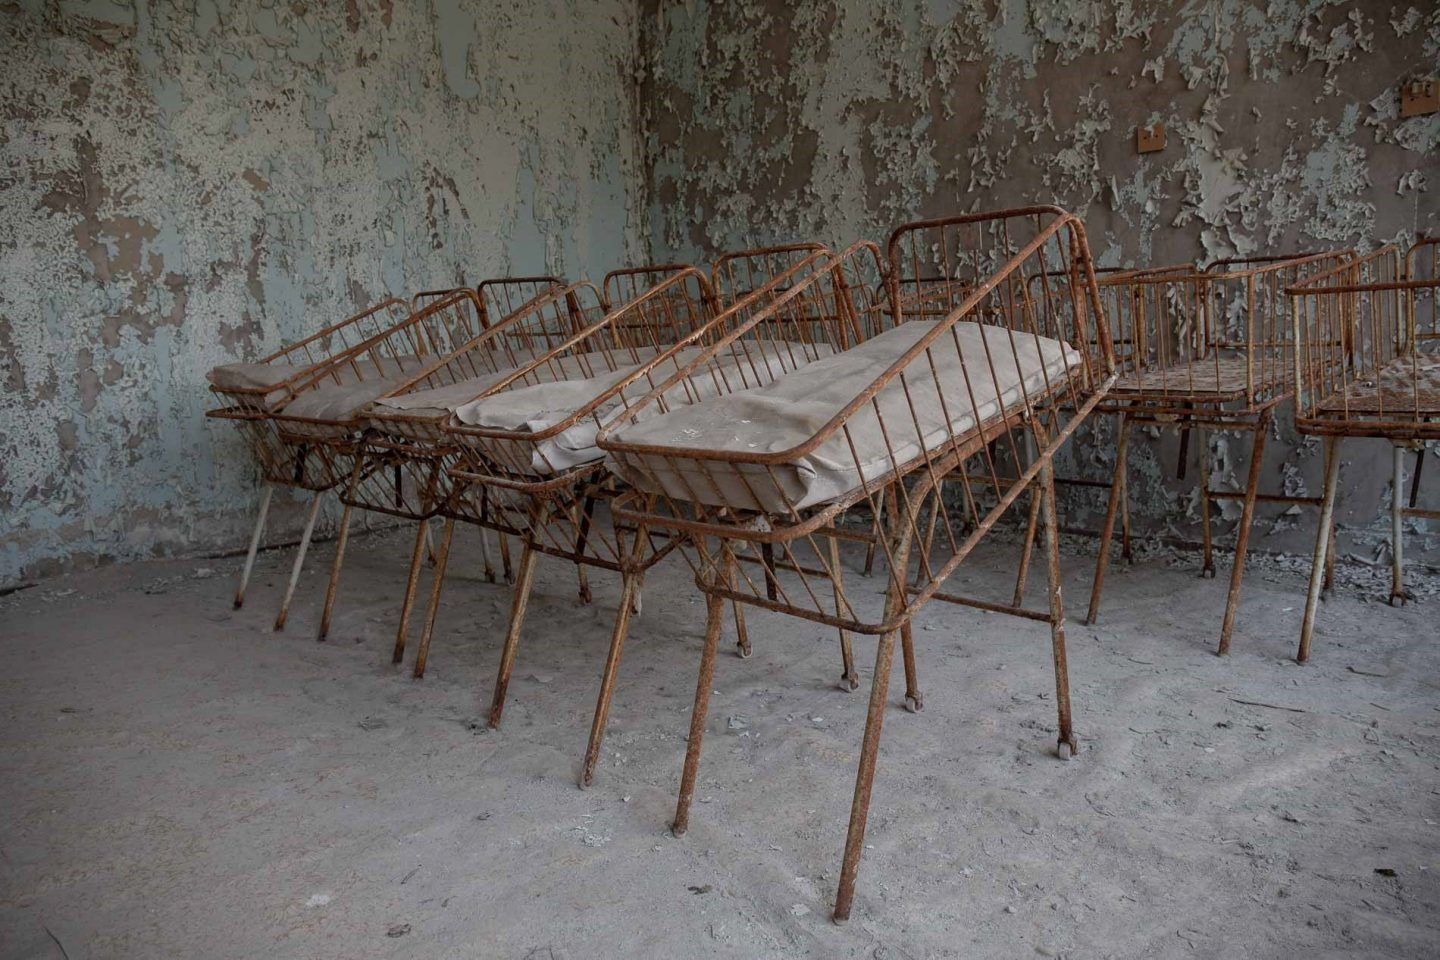 Ghostly Pripyat - frozen in time